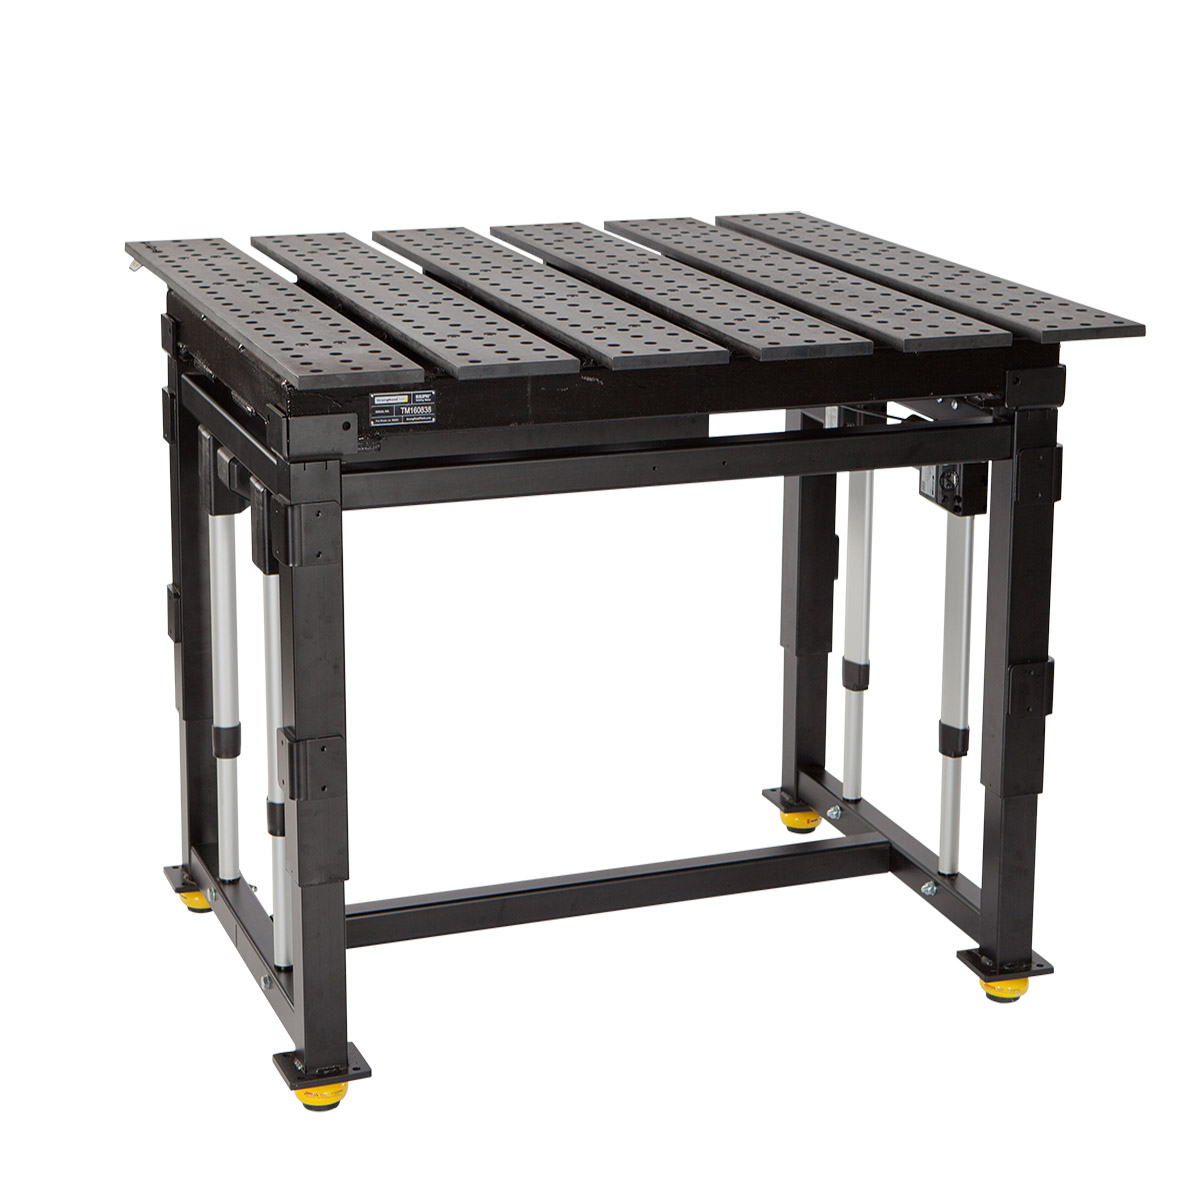 Weld table built ergonomic and durable